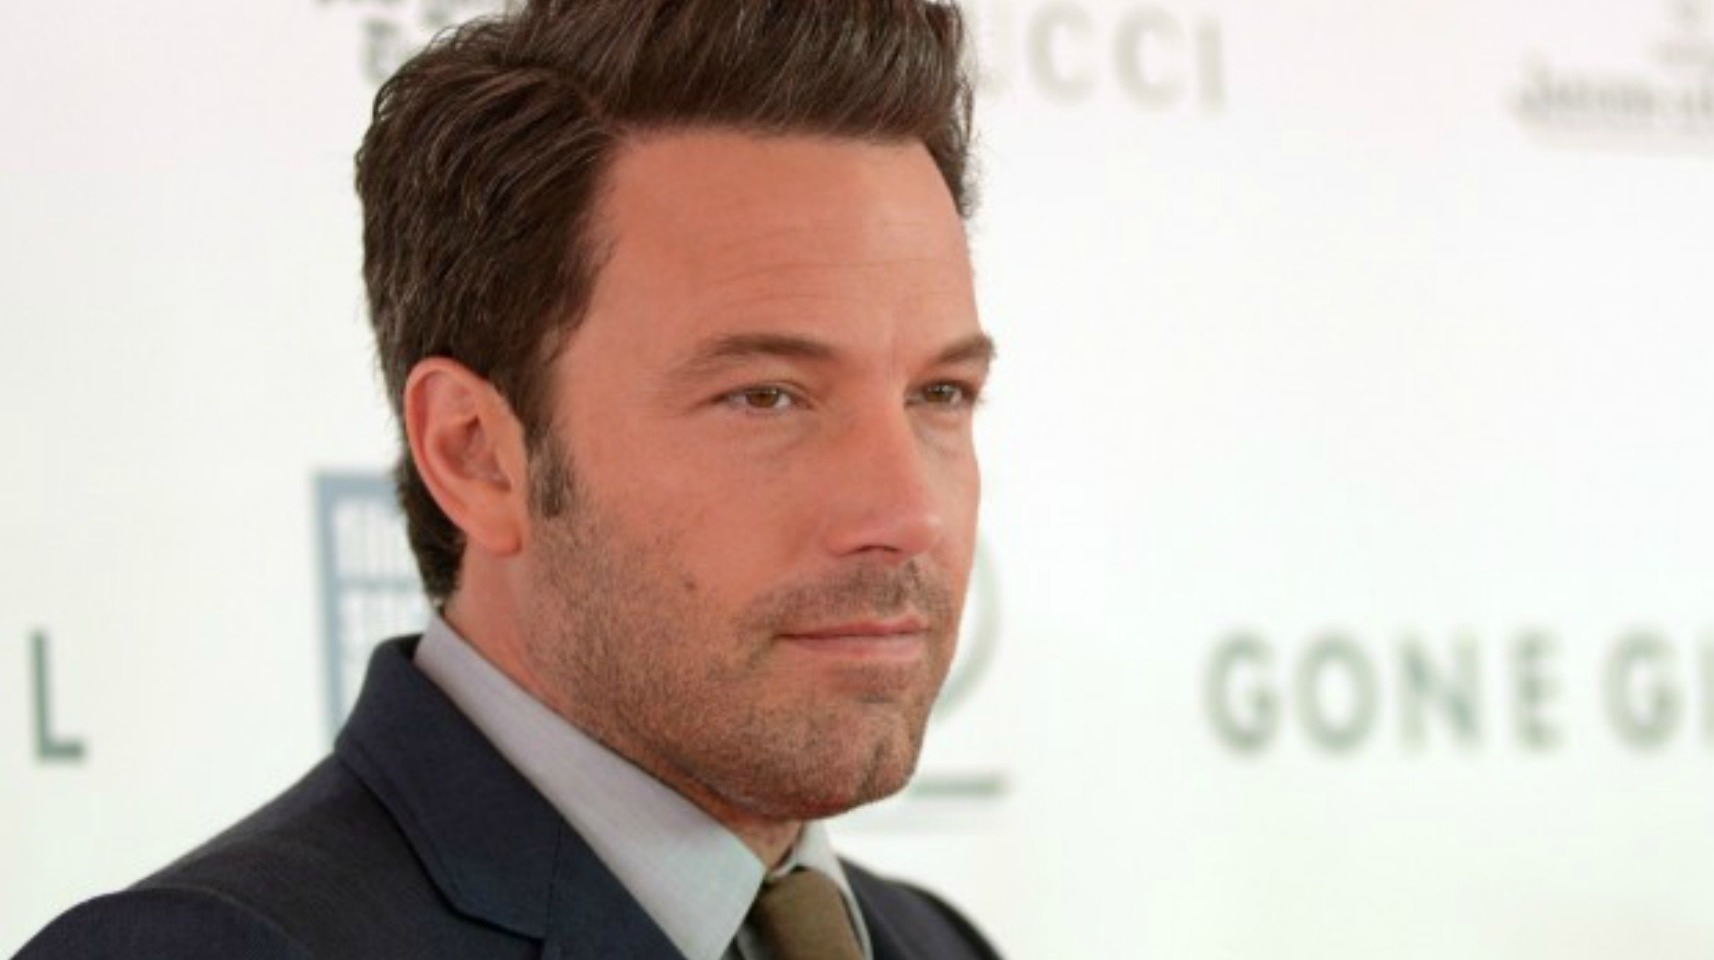 Ben Affleck breaks all the rules in throwback Burger King